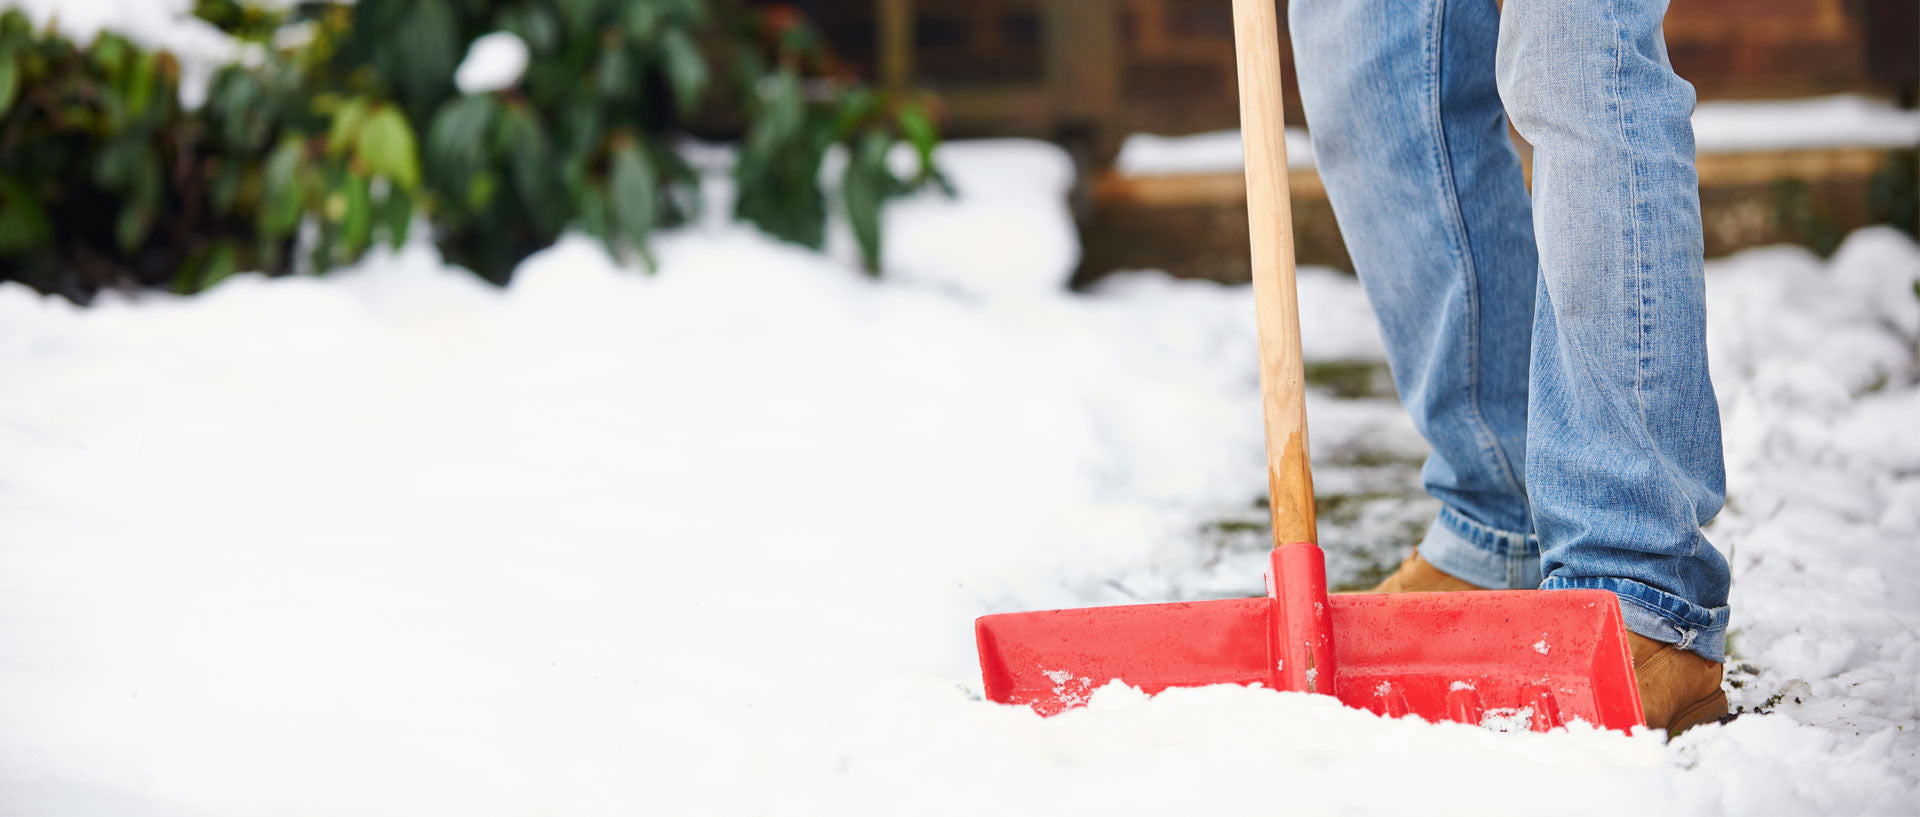 Winter Storm Hacks - Use Coffee Grounds to Salt Icy Walkways